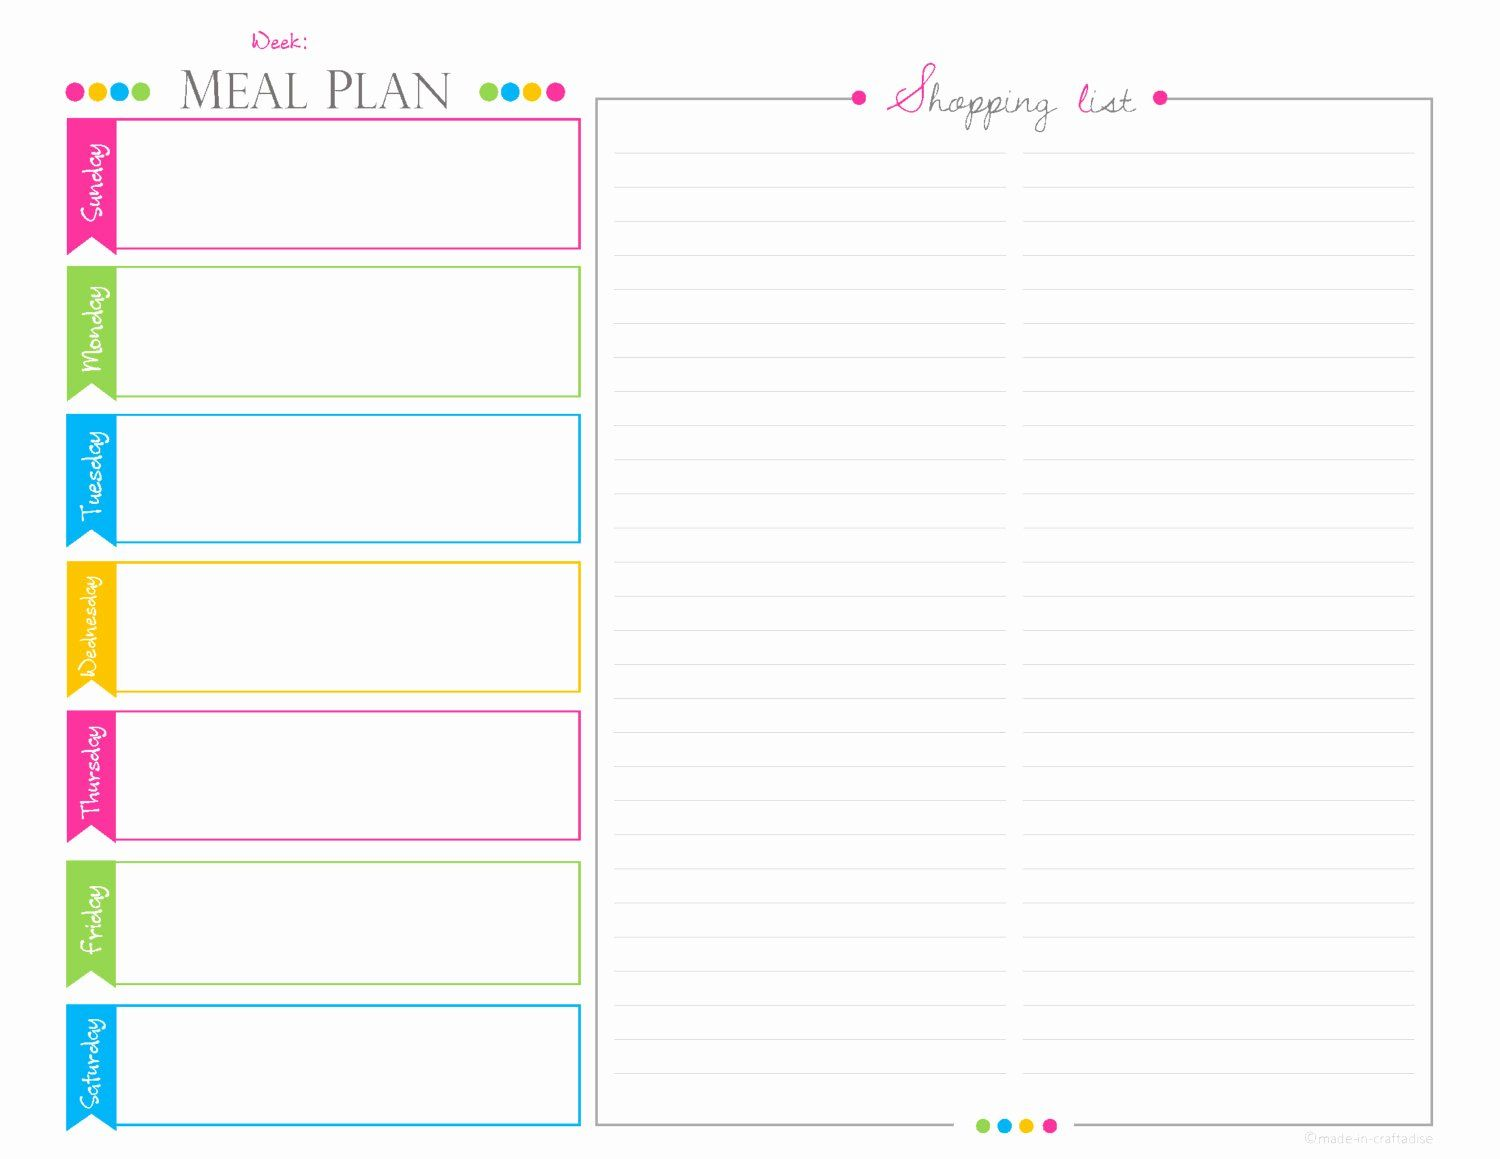 Meal Plan Template Pdf New Weekly Meal Planningshopping List Pdf Planner Landscape Meal Planning Calendar Shopping List Planner Planner Pages Weekly meal planner template pdf